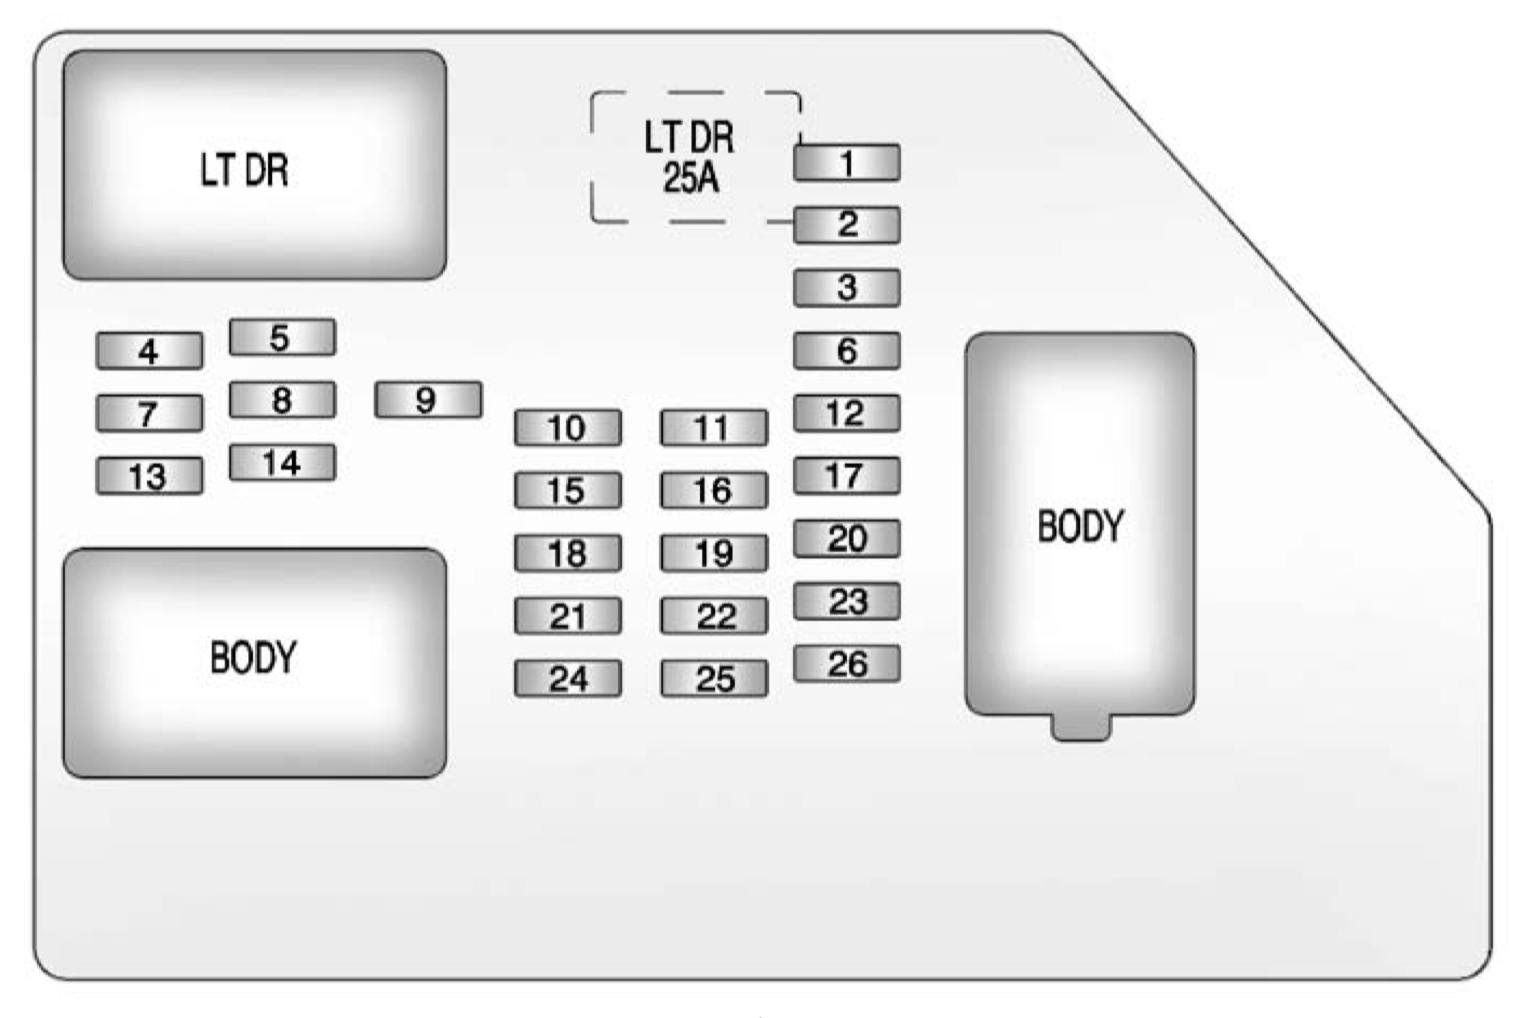 Chevrolet Tahoe (2012 - 2014) - fuse box diagram - Auto Genius